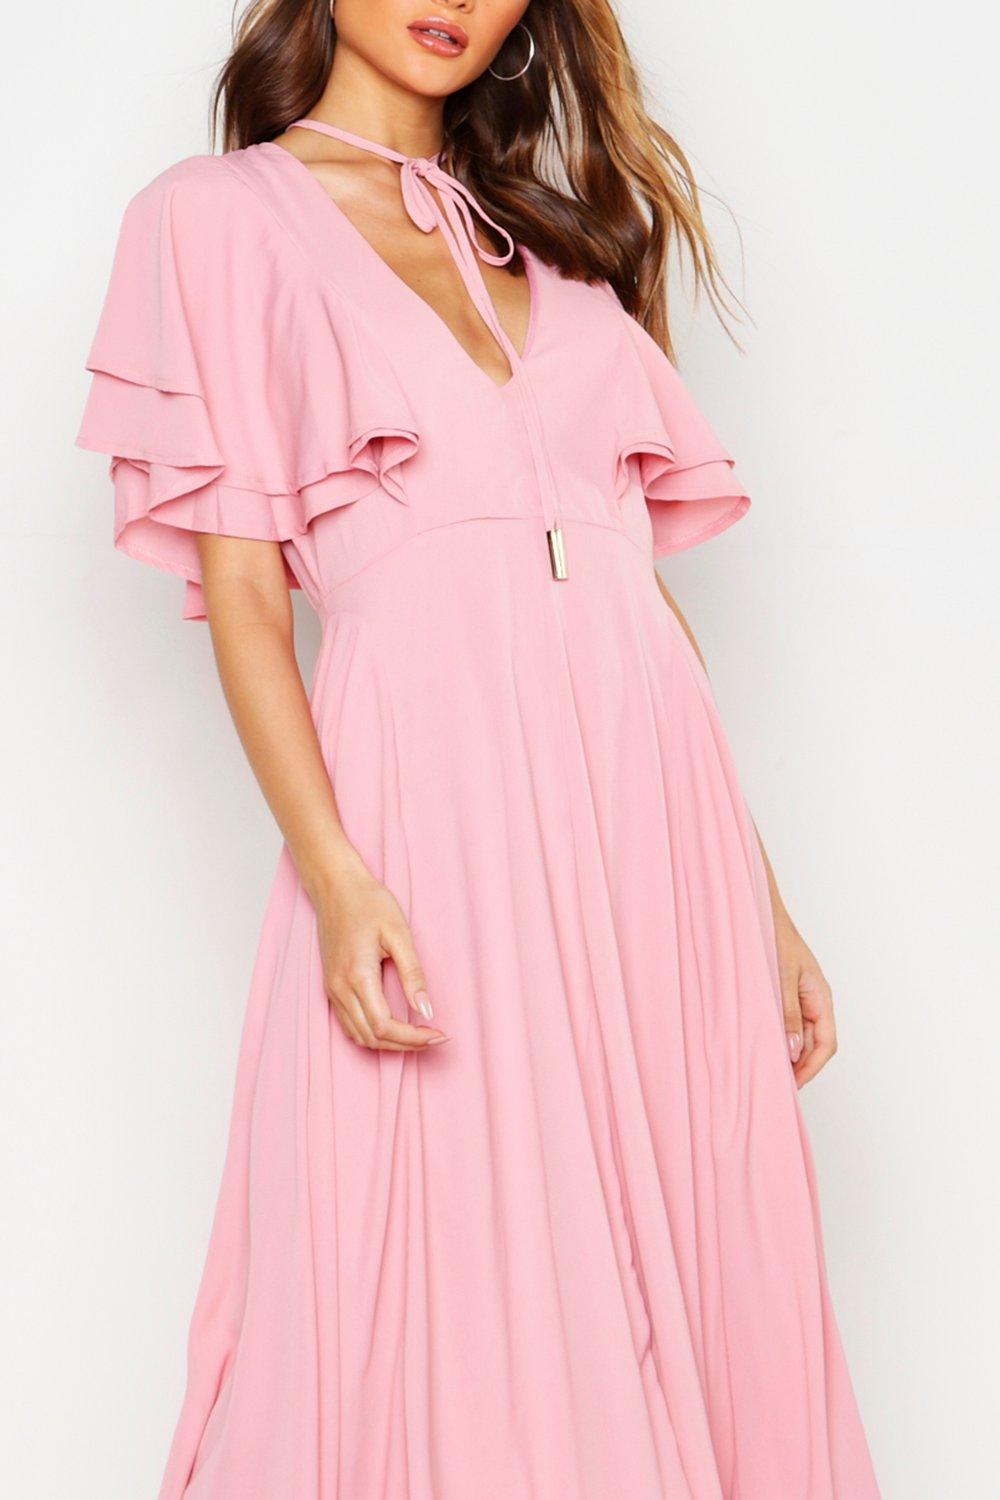 Boohoo Womens Freyja Ruffle Angel Sleeve Bolo Tie Midi Dress in 10 ... 189cfccbf